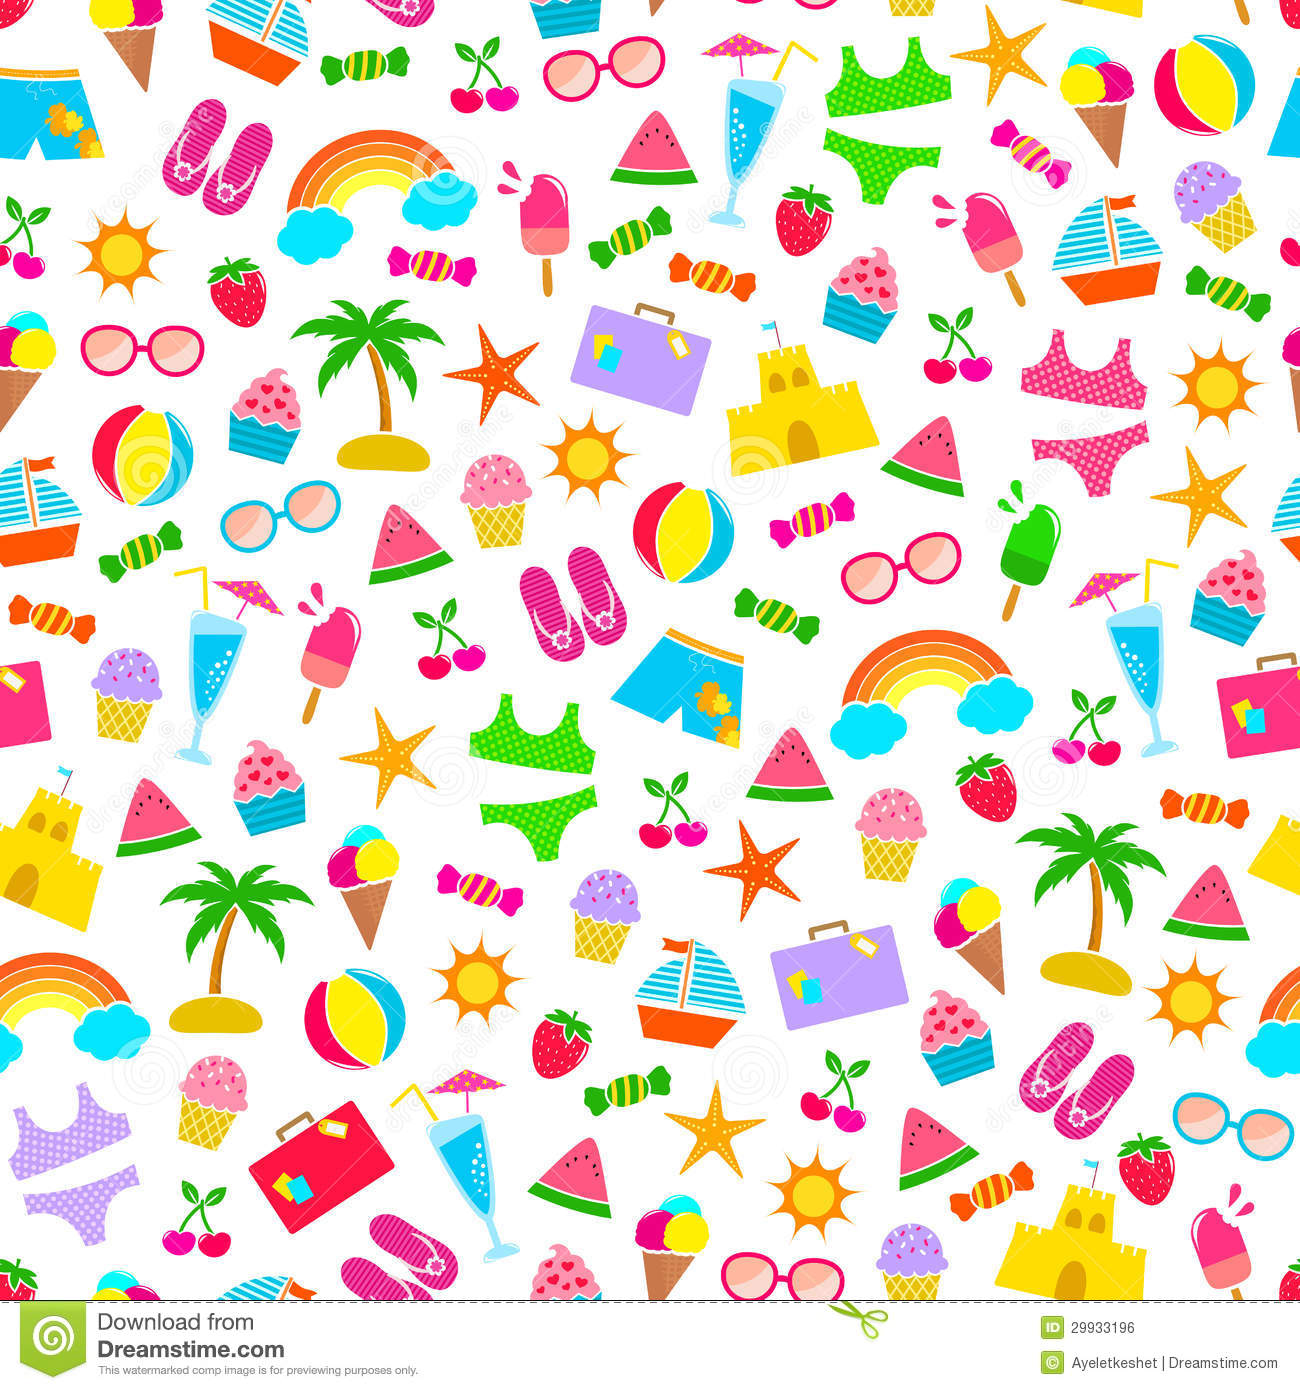 Cute Popsicle Wallpaper Summer Pattern Stock Vector Image Of Image Group Icons